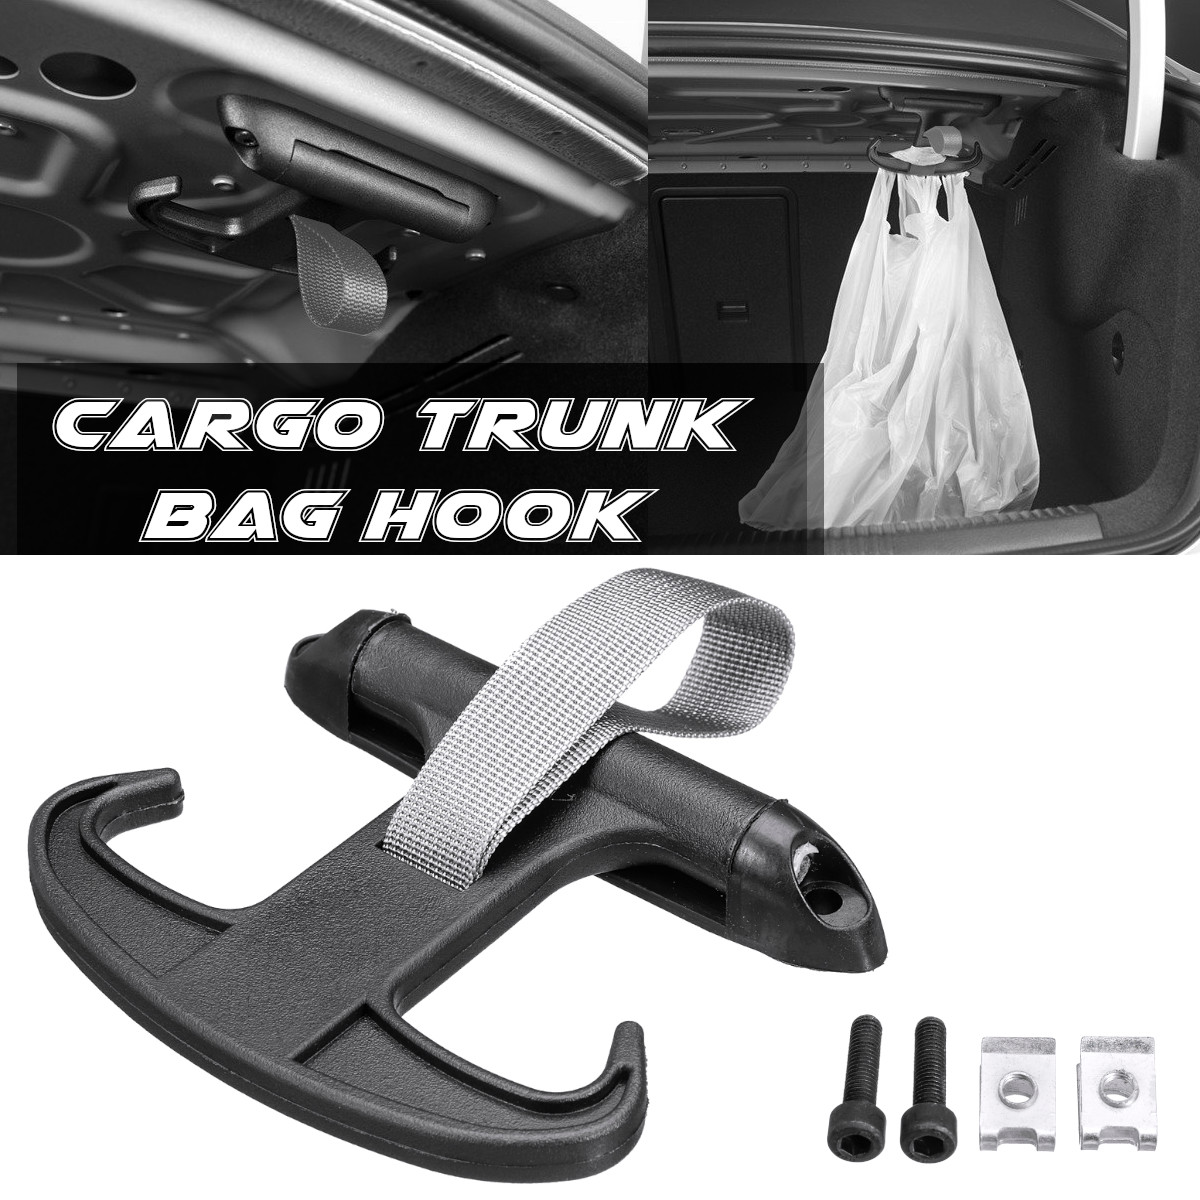 High Quality Black Car Cargo Trunk Bag Hook Holder Hanger For VW Passat B6 CC  for Volkswagen Jetta MK5-in Auto Fastener & Clip from Automobiles & Motorcycles